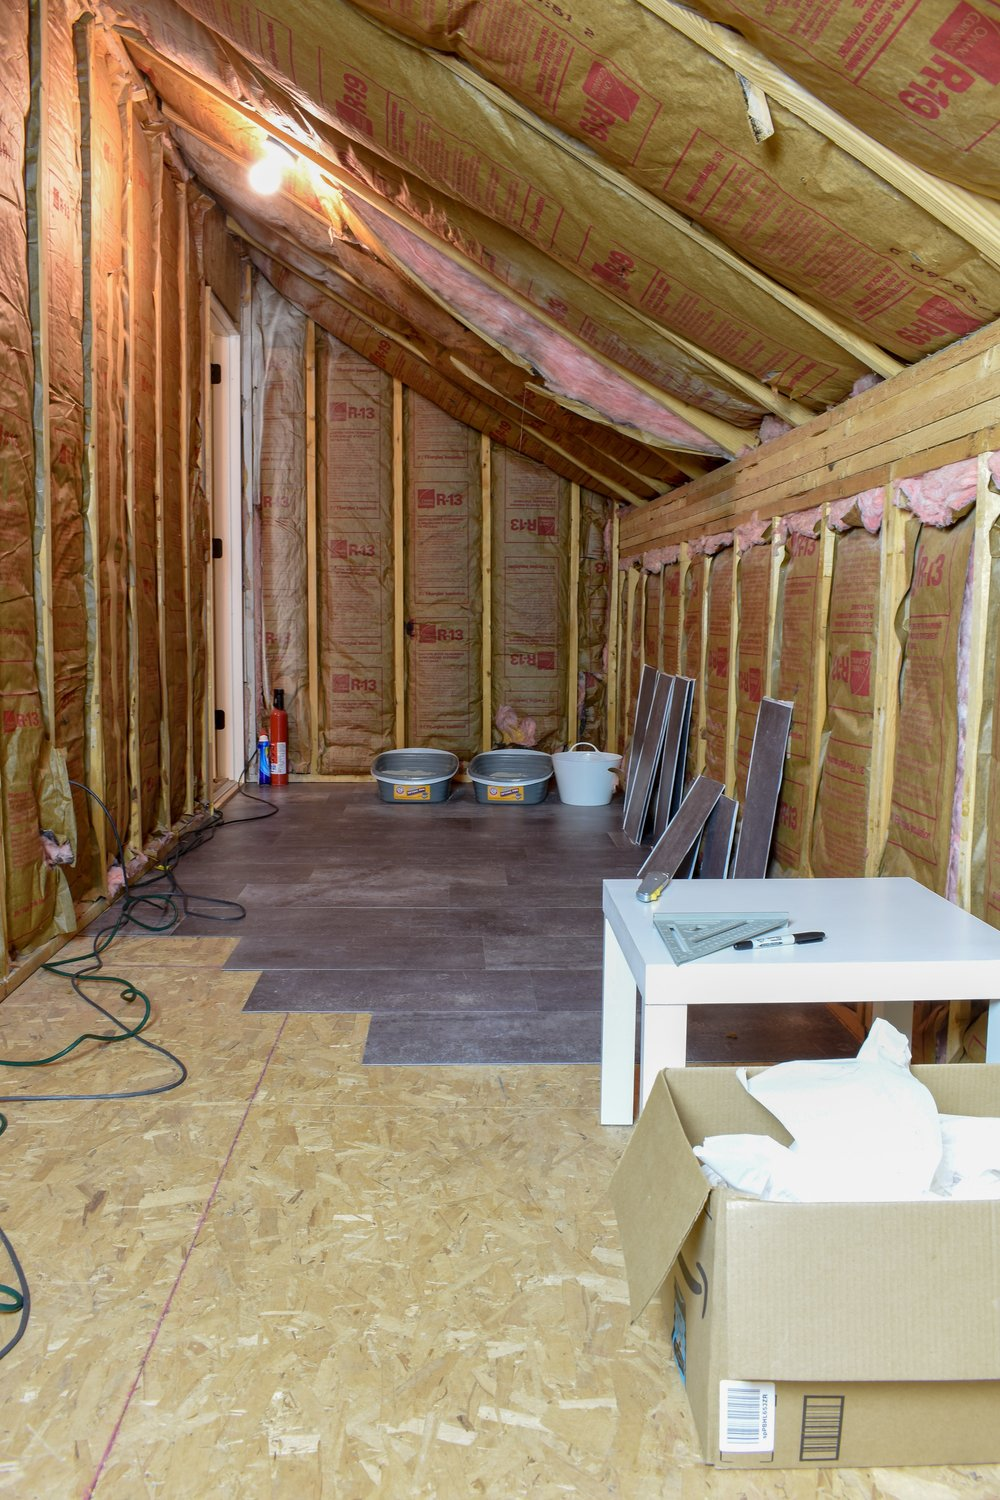 Easy Tile Installation For Finishing An Unfinished Space